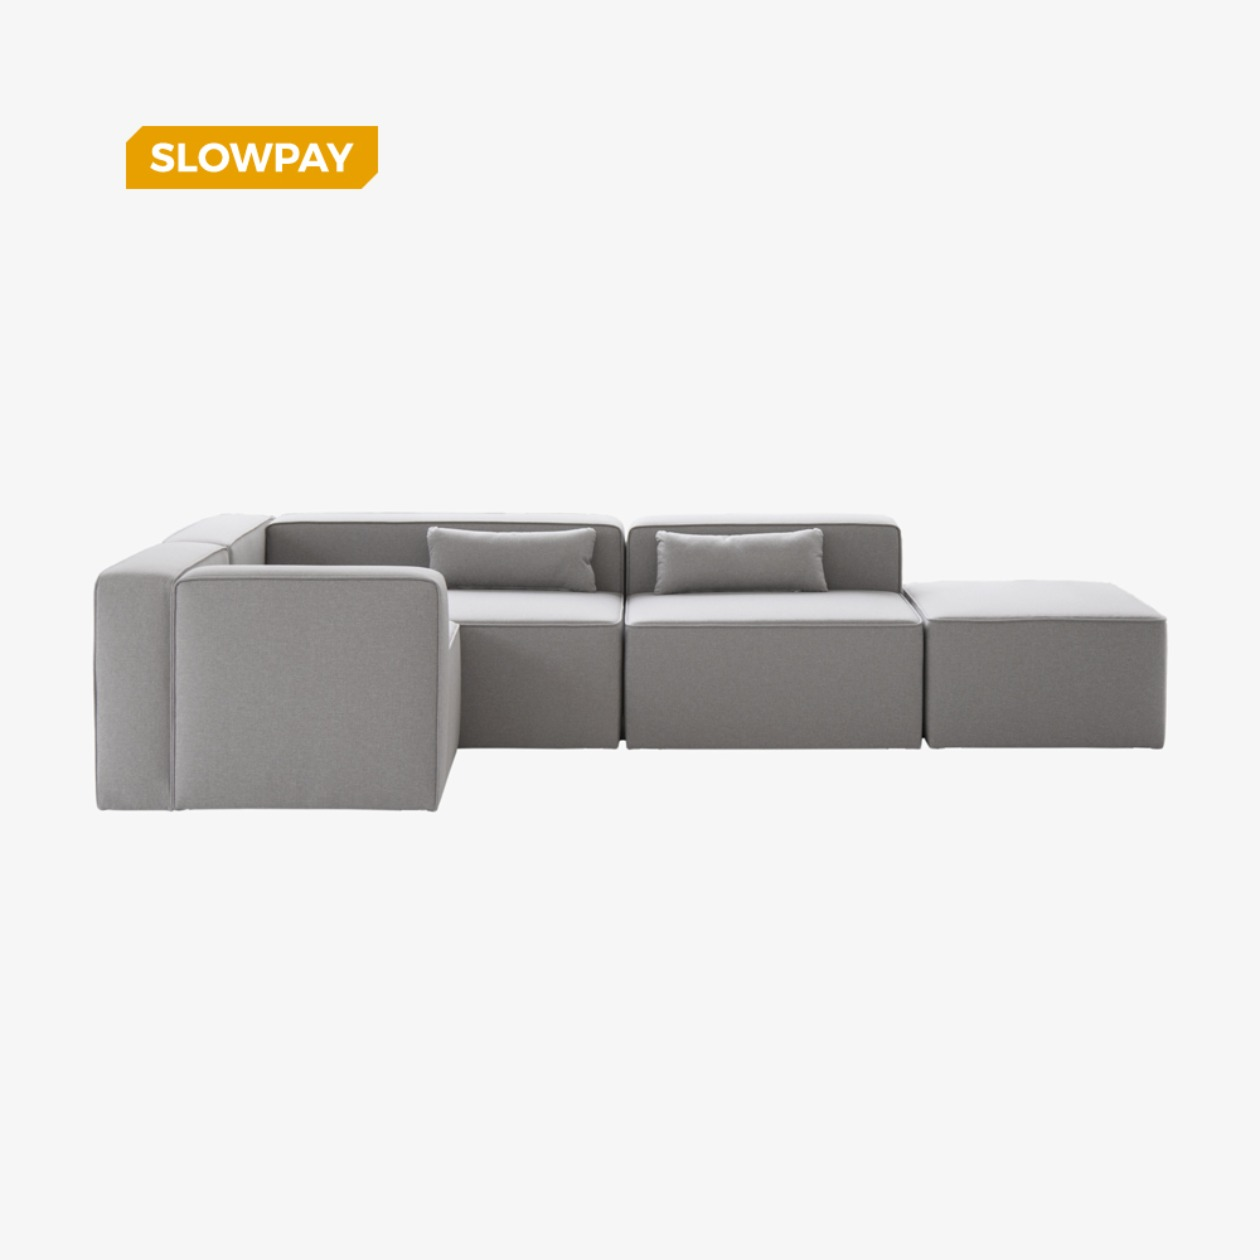 [SLOW PAY] TIMELESS SOFA A+B+C+D